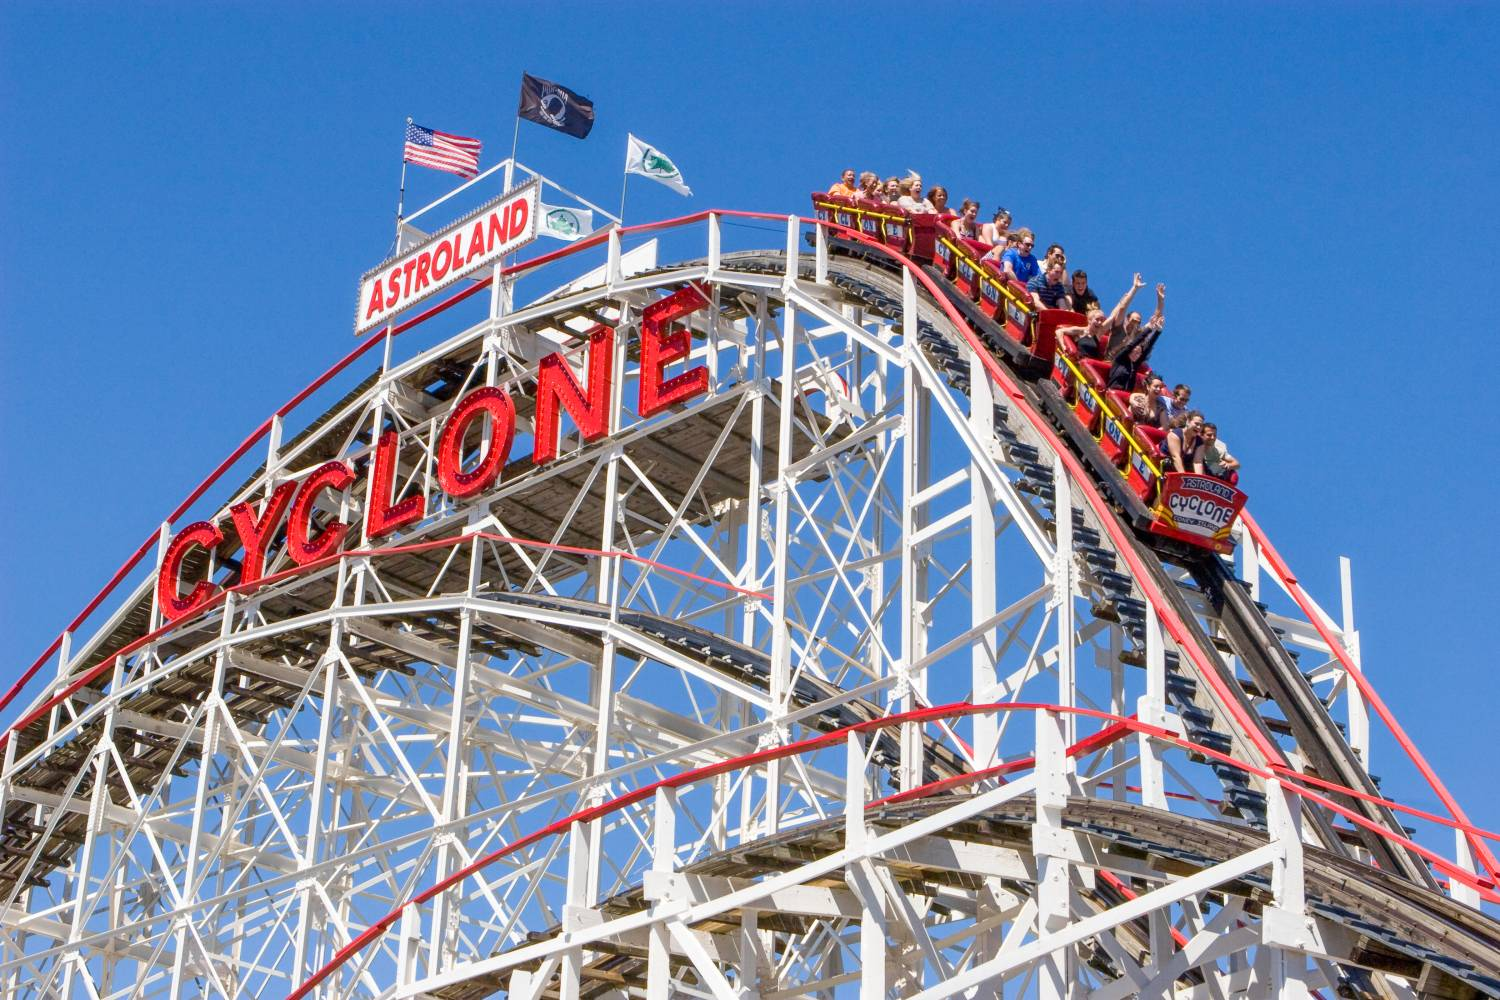 The Cyclone in Coney Island